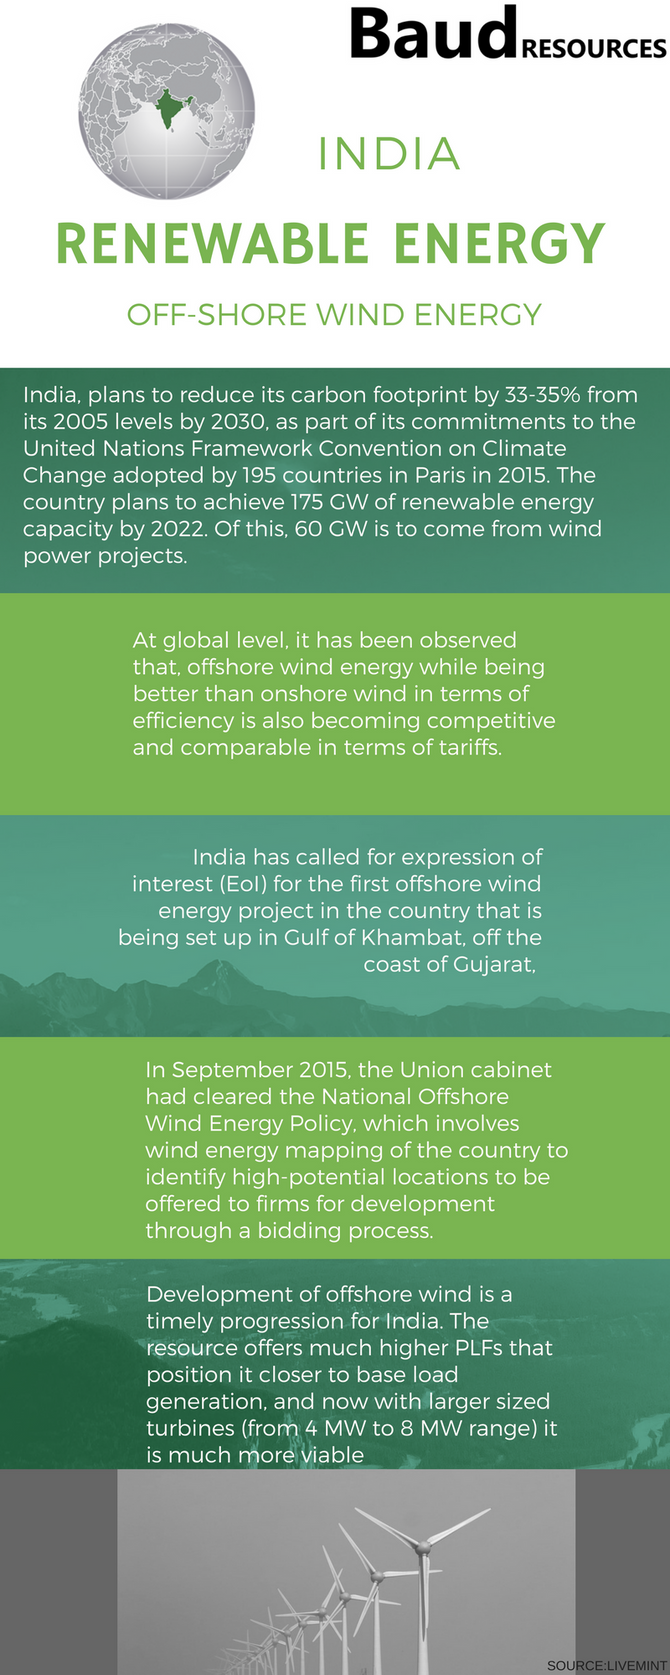 Offshore Wind Energy: A Timely Progression For India